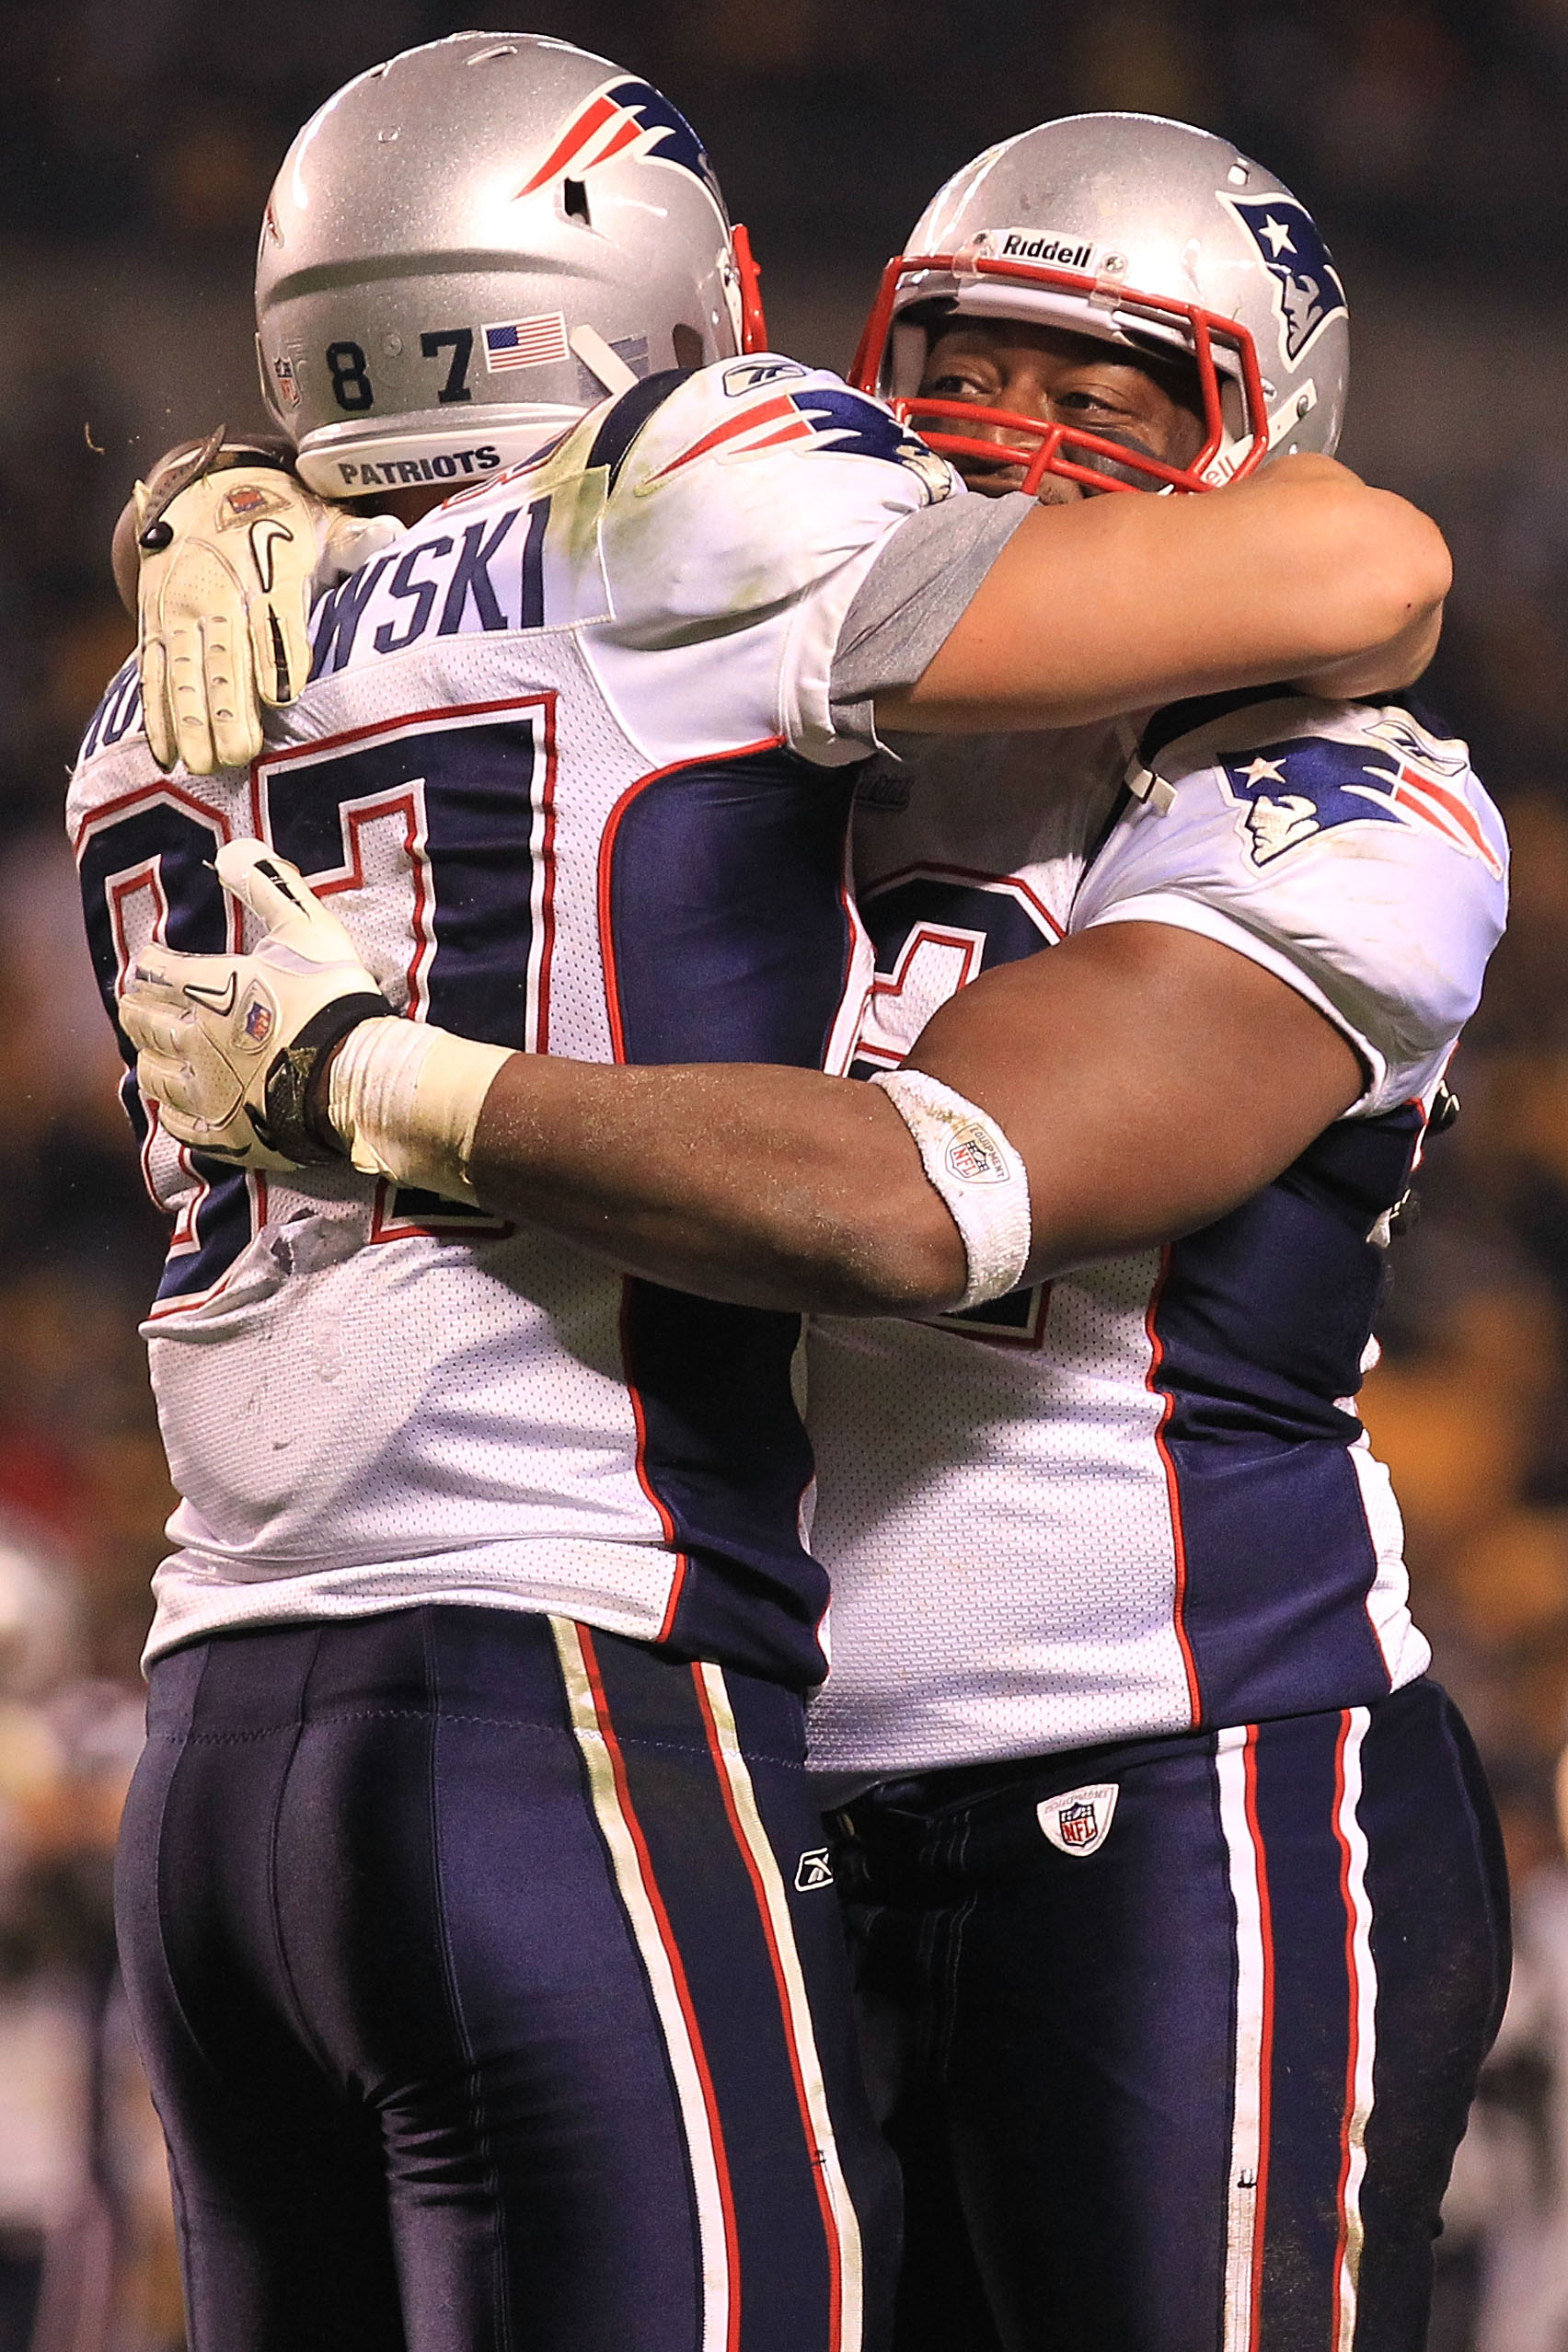 PITTSBURGH - NOVEMBER 14:  Rob Gronkowski #87 of the New England Patriots celebrates scoring a touchdown with team mate Alge Crumpler #82 against the Pittsburgh Steelers on November 14, 2010 at Heinz Field in Pittsburgh, Pennsylvania.  (Photo by Chris McG